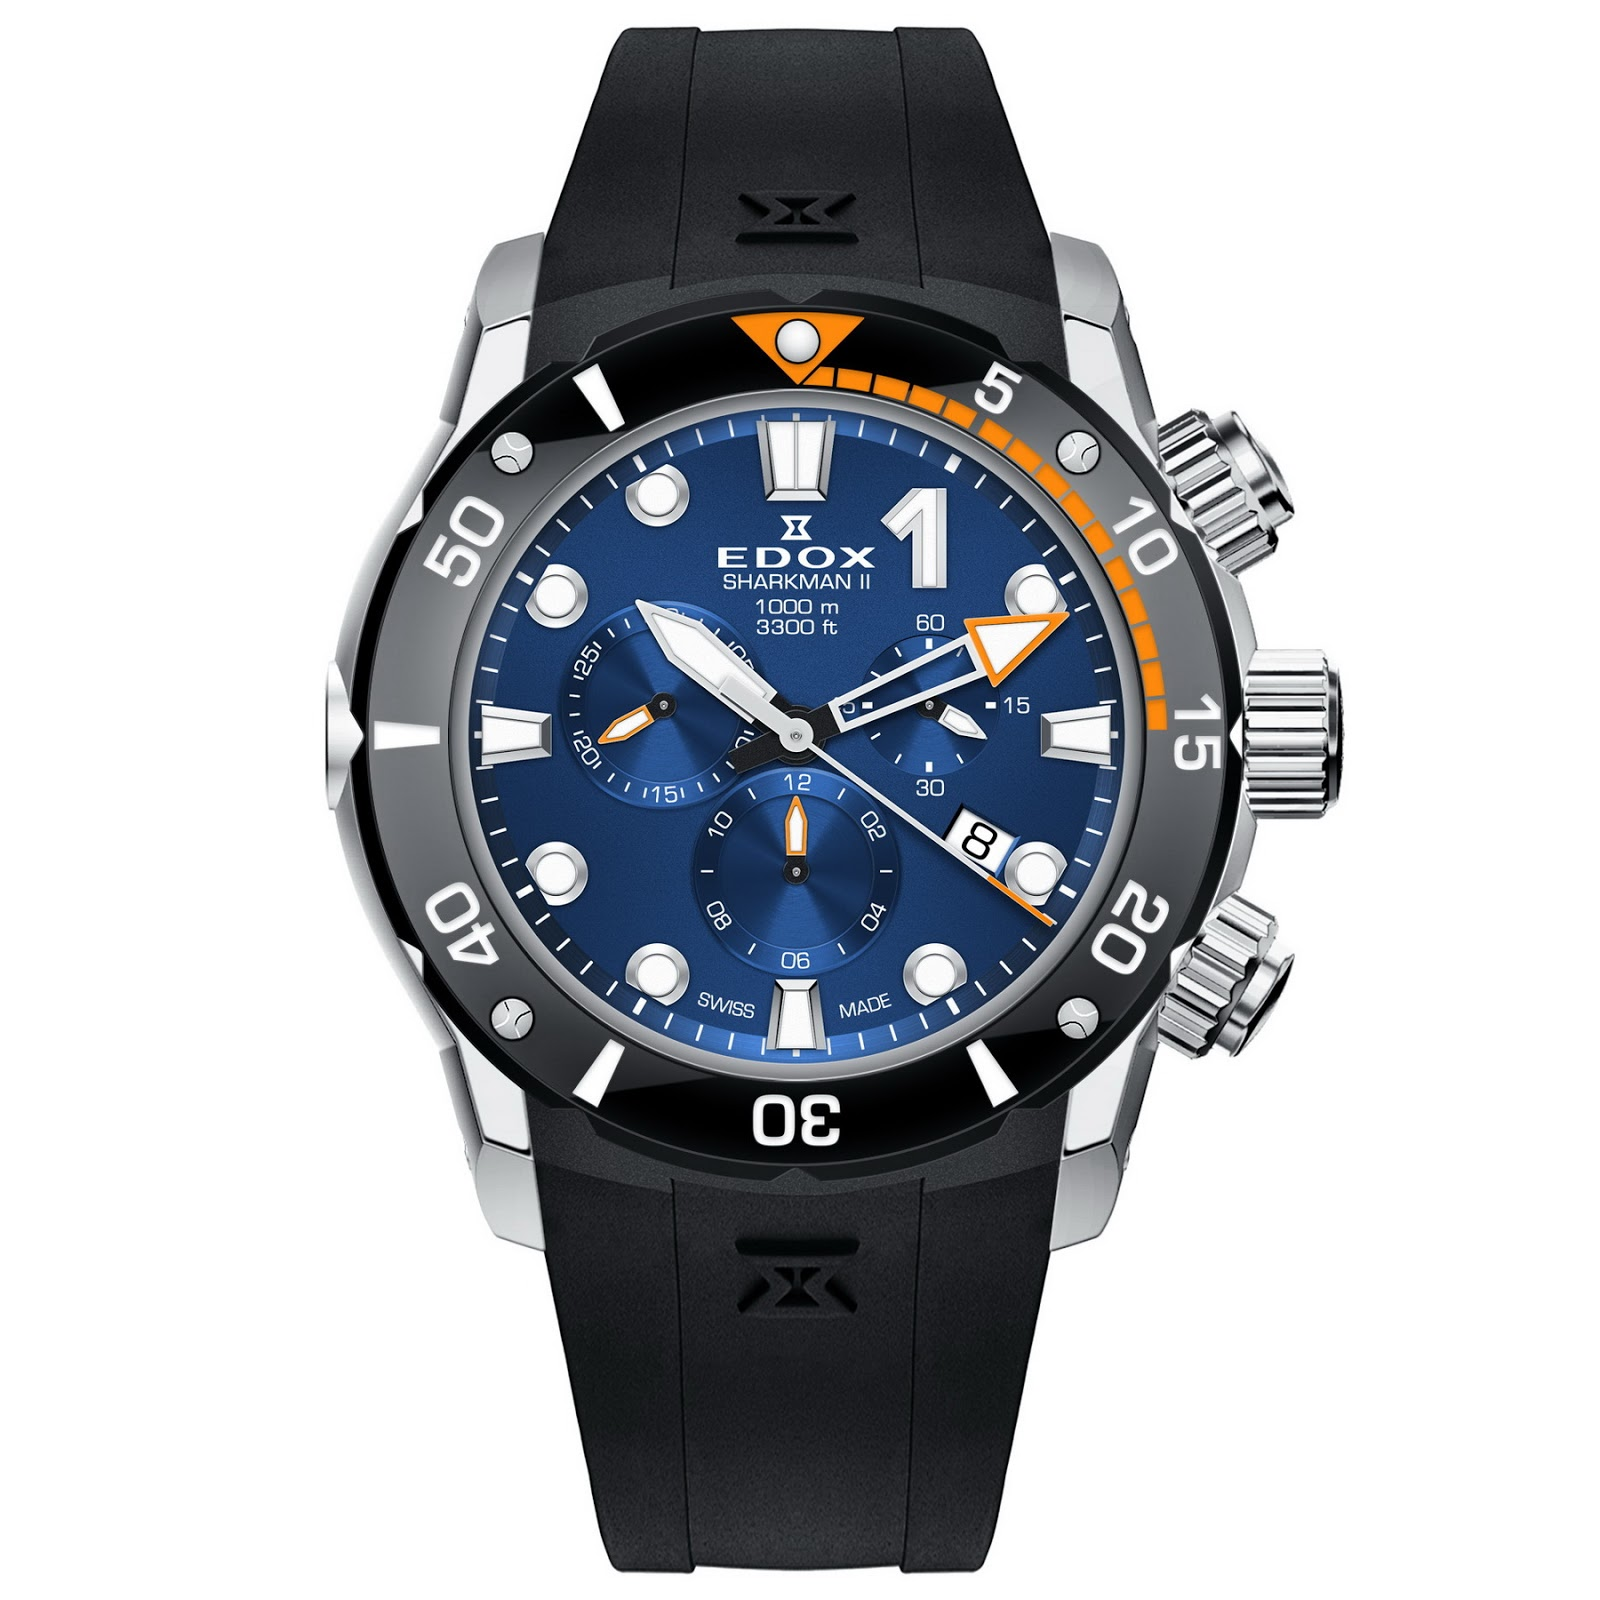 Edox Sharkman II Limited Edition